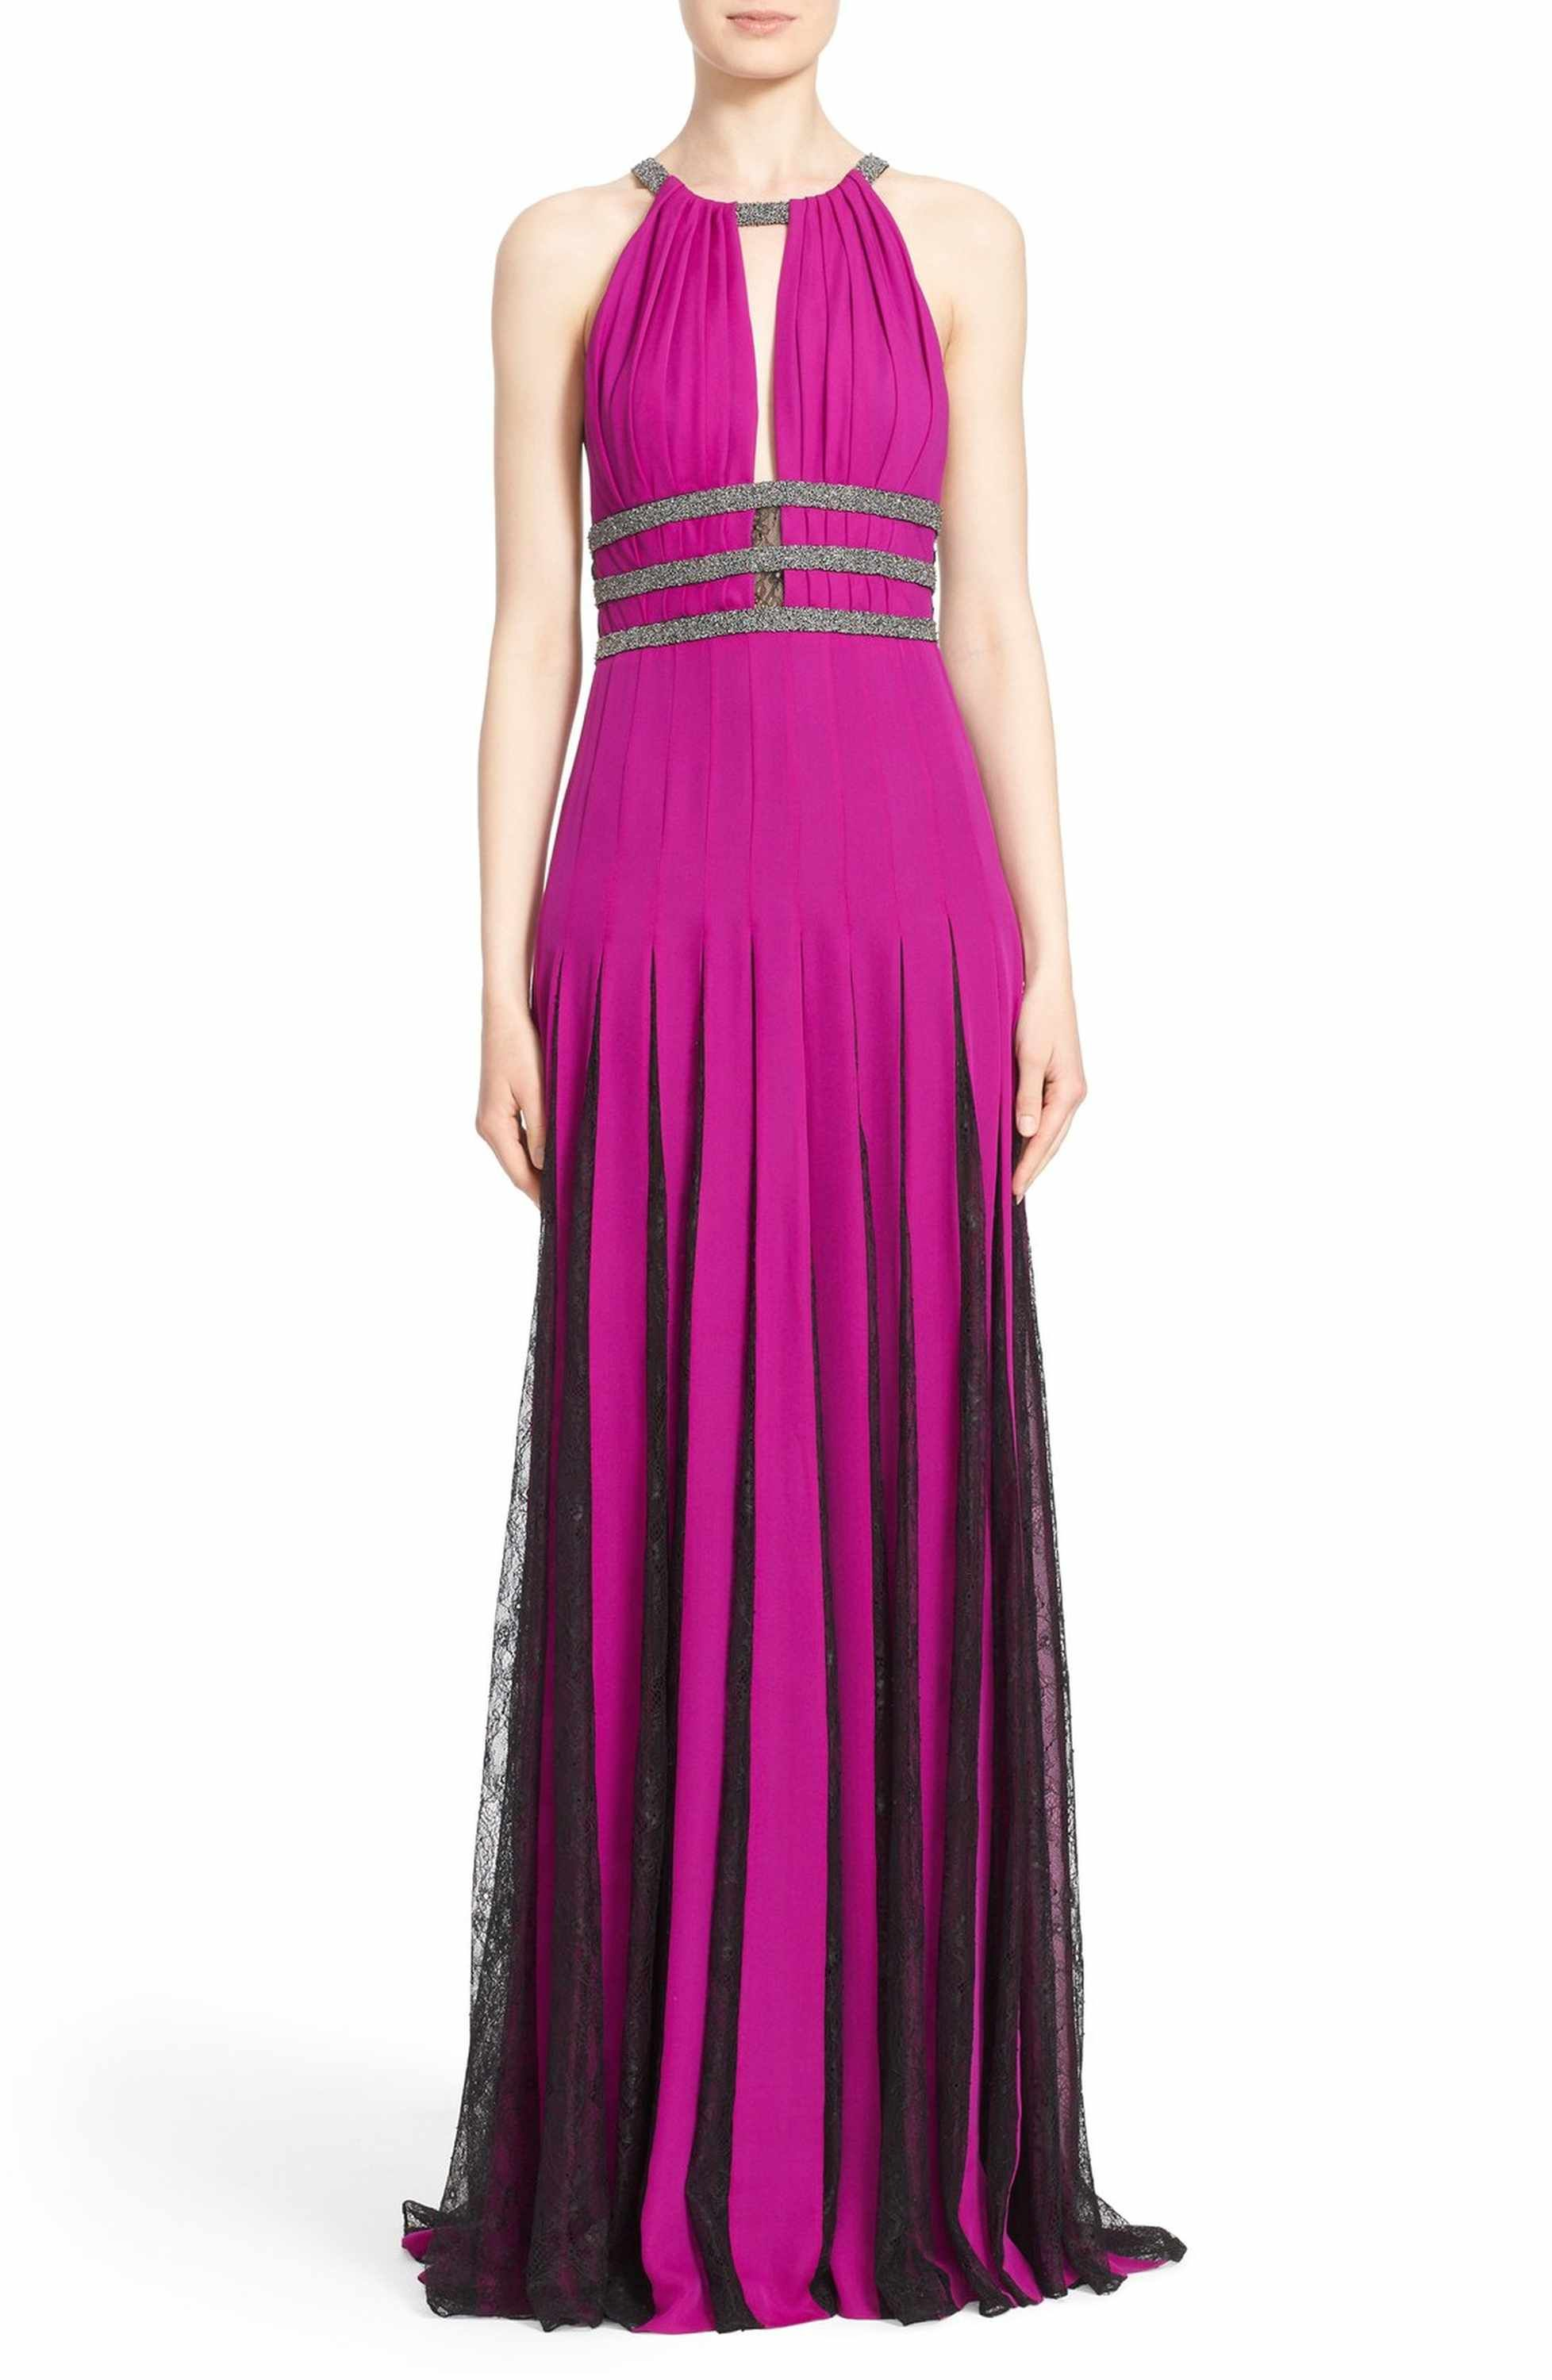 Nordstrom dresses wedding guest  Couture Silk Halter Gown with Lace Pleats  Halter gown Badgley